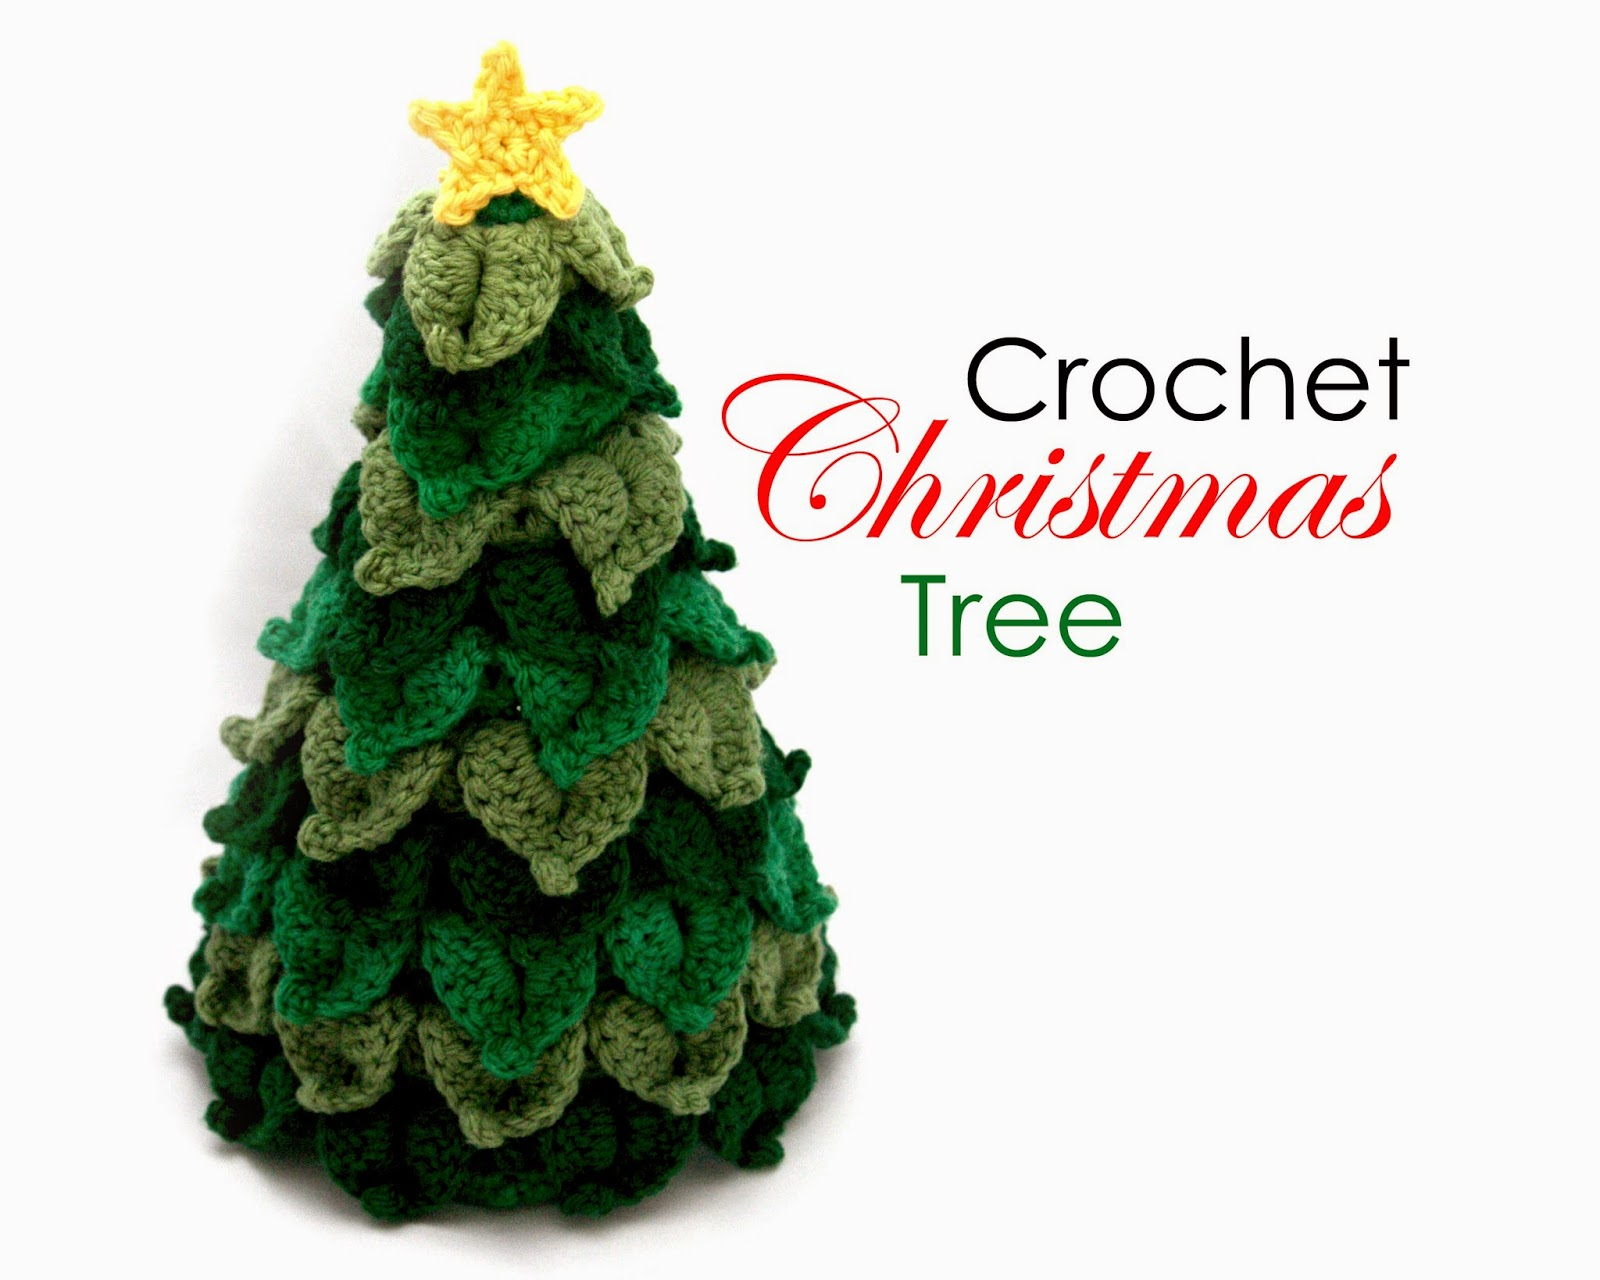 O' Crochet Christmas Tree! Crochet TUTORIAL